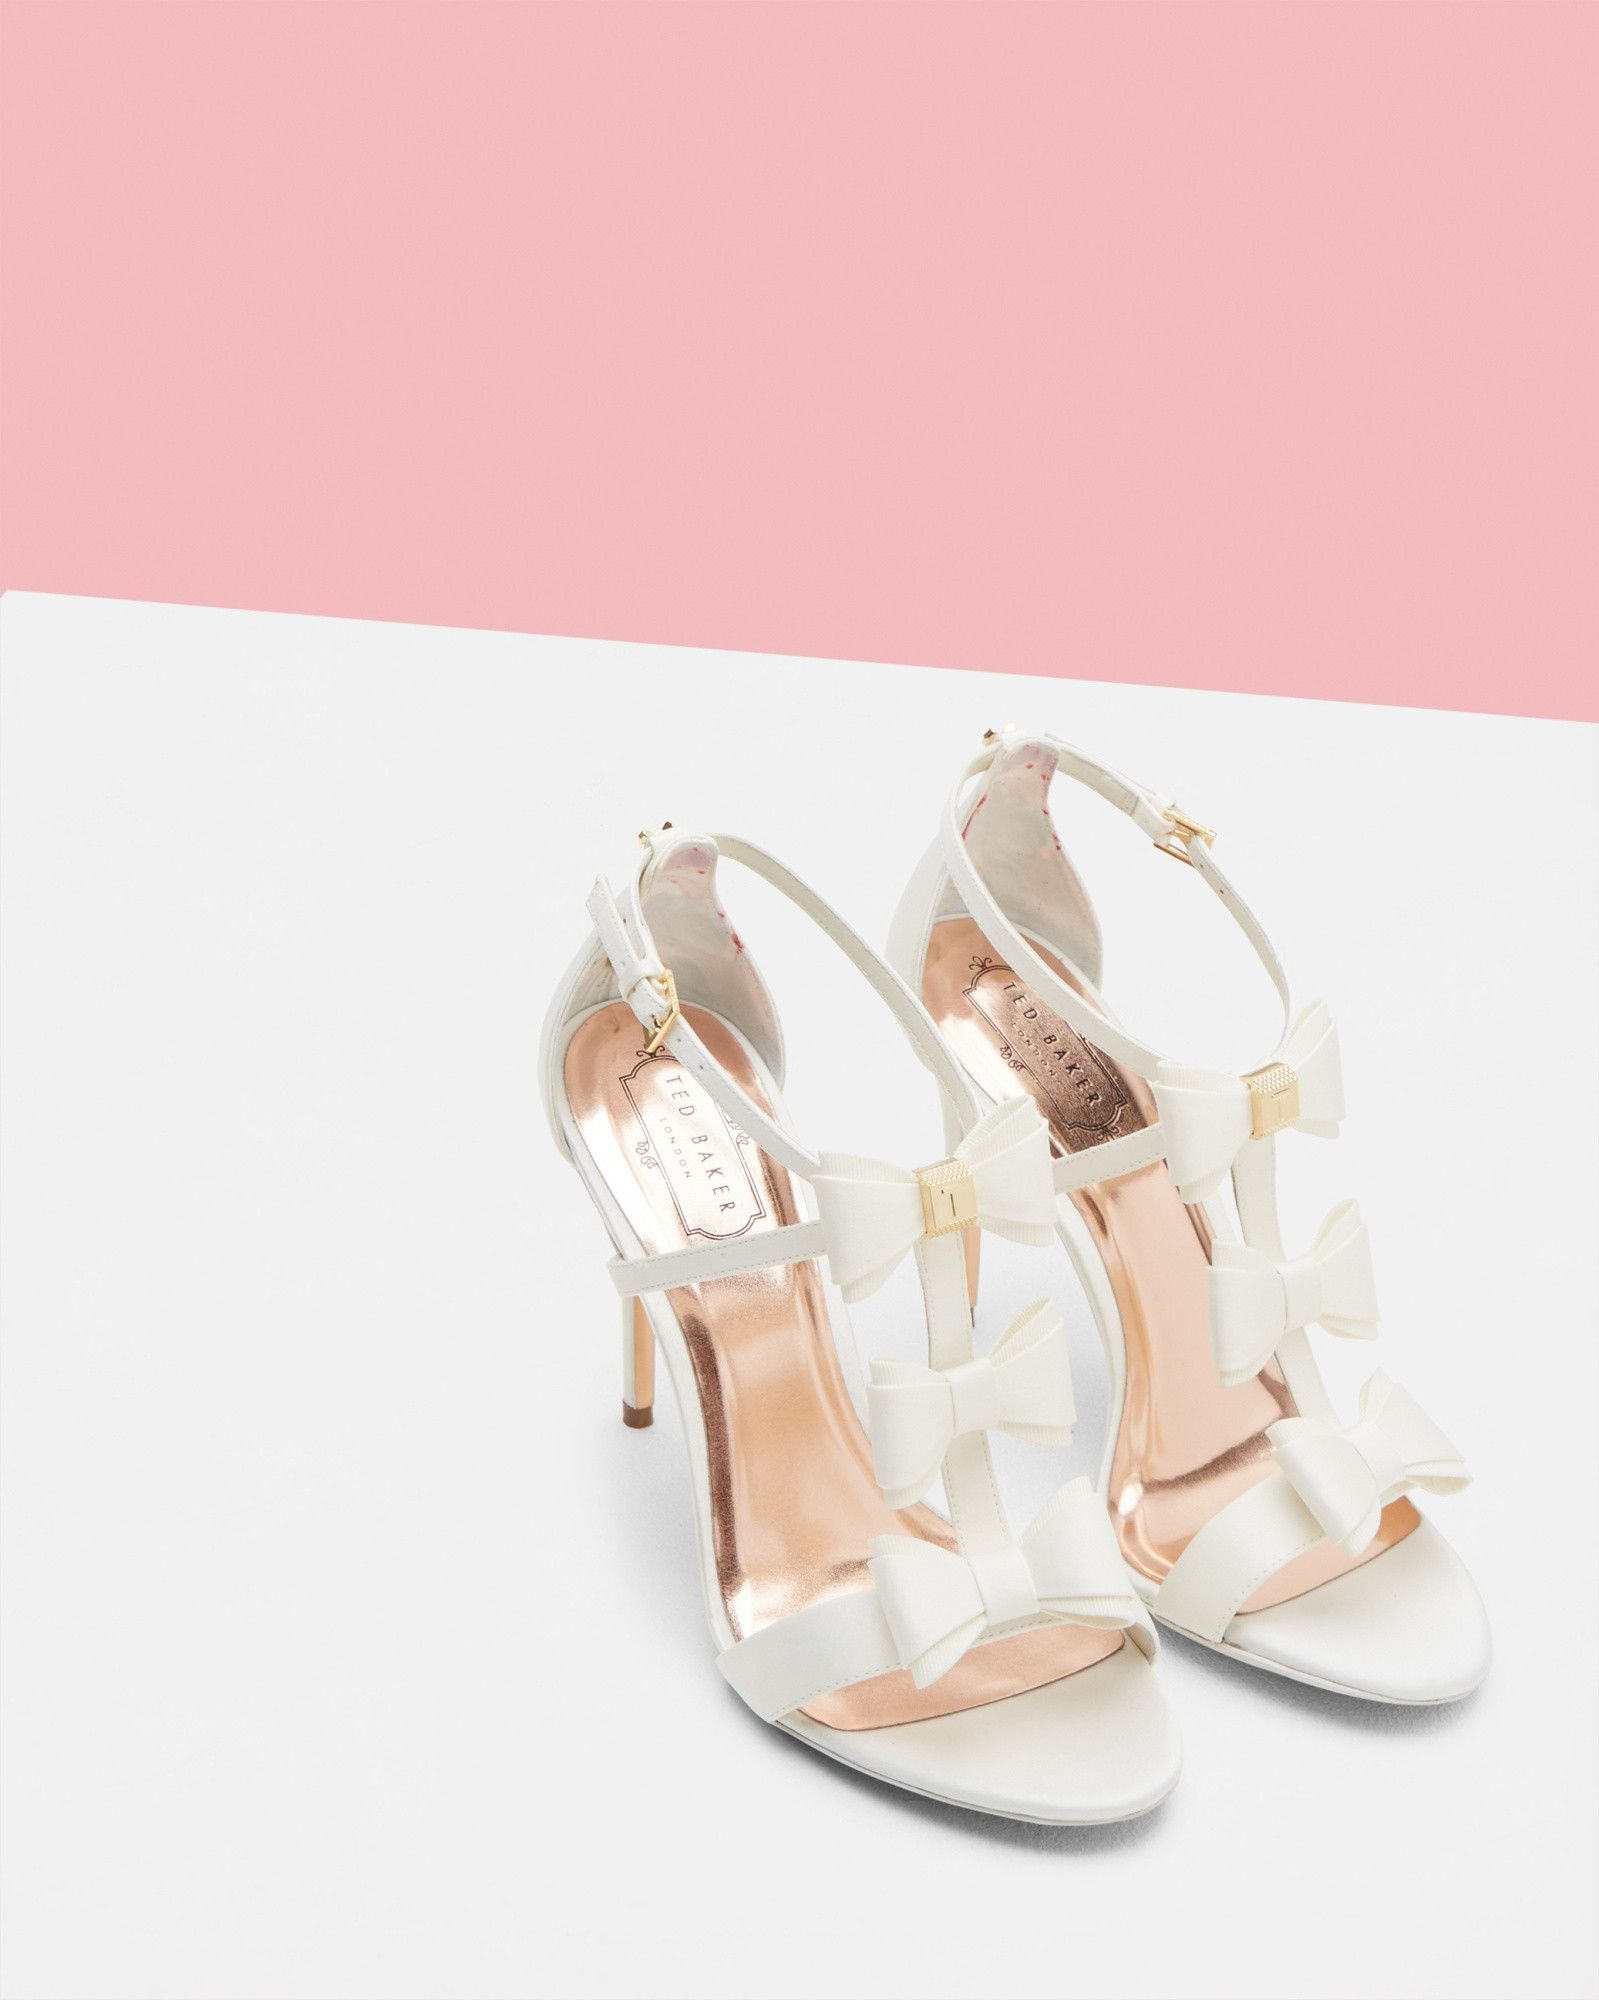 b1b37c287 Love these!  WedWithTed Triple bow detail sandals - White